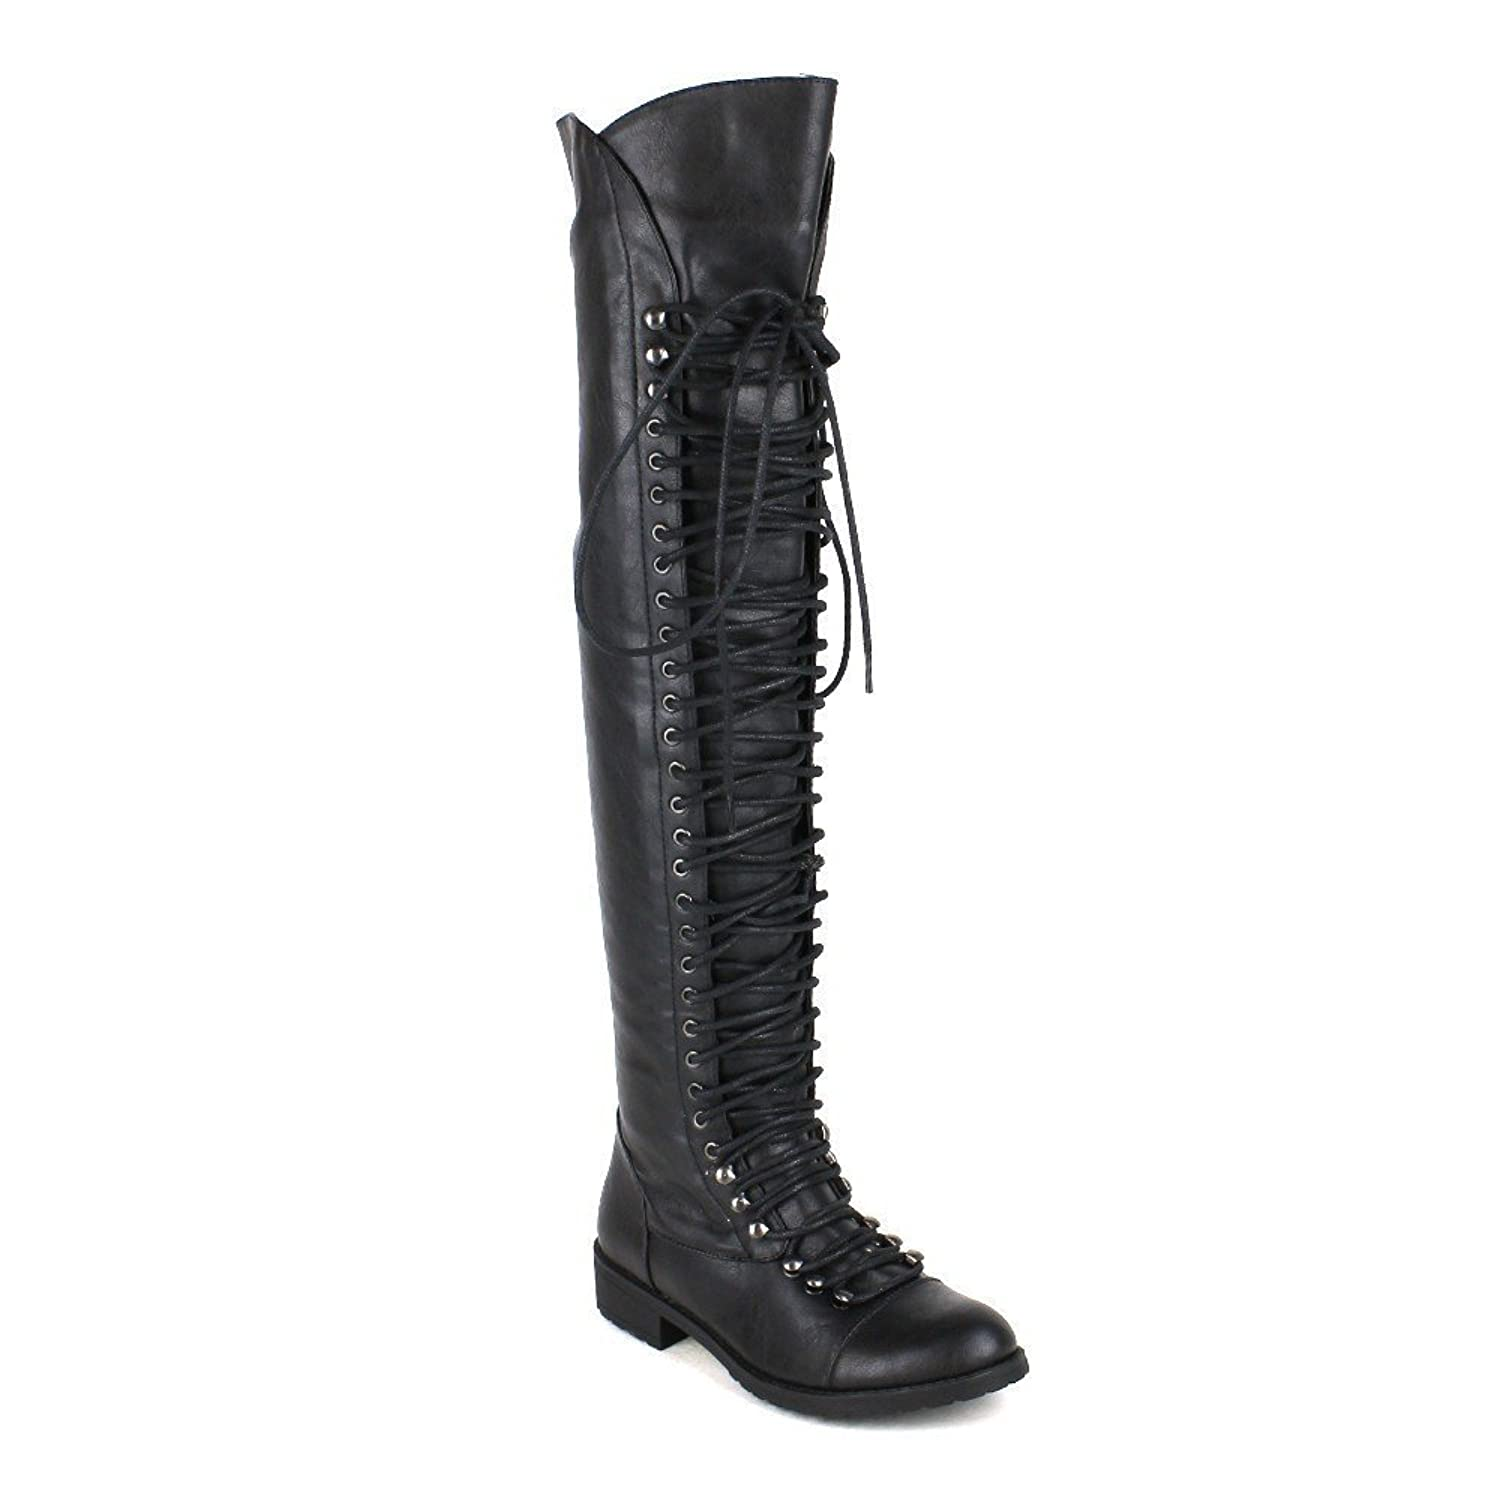 Women's Black Tall Lace-Up Thigh High Flat Heel Faux Leather Boots